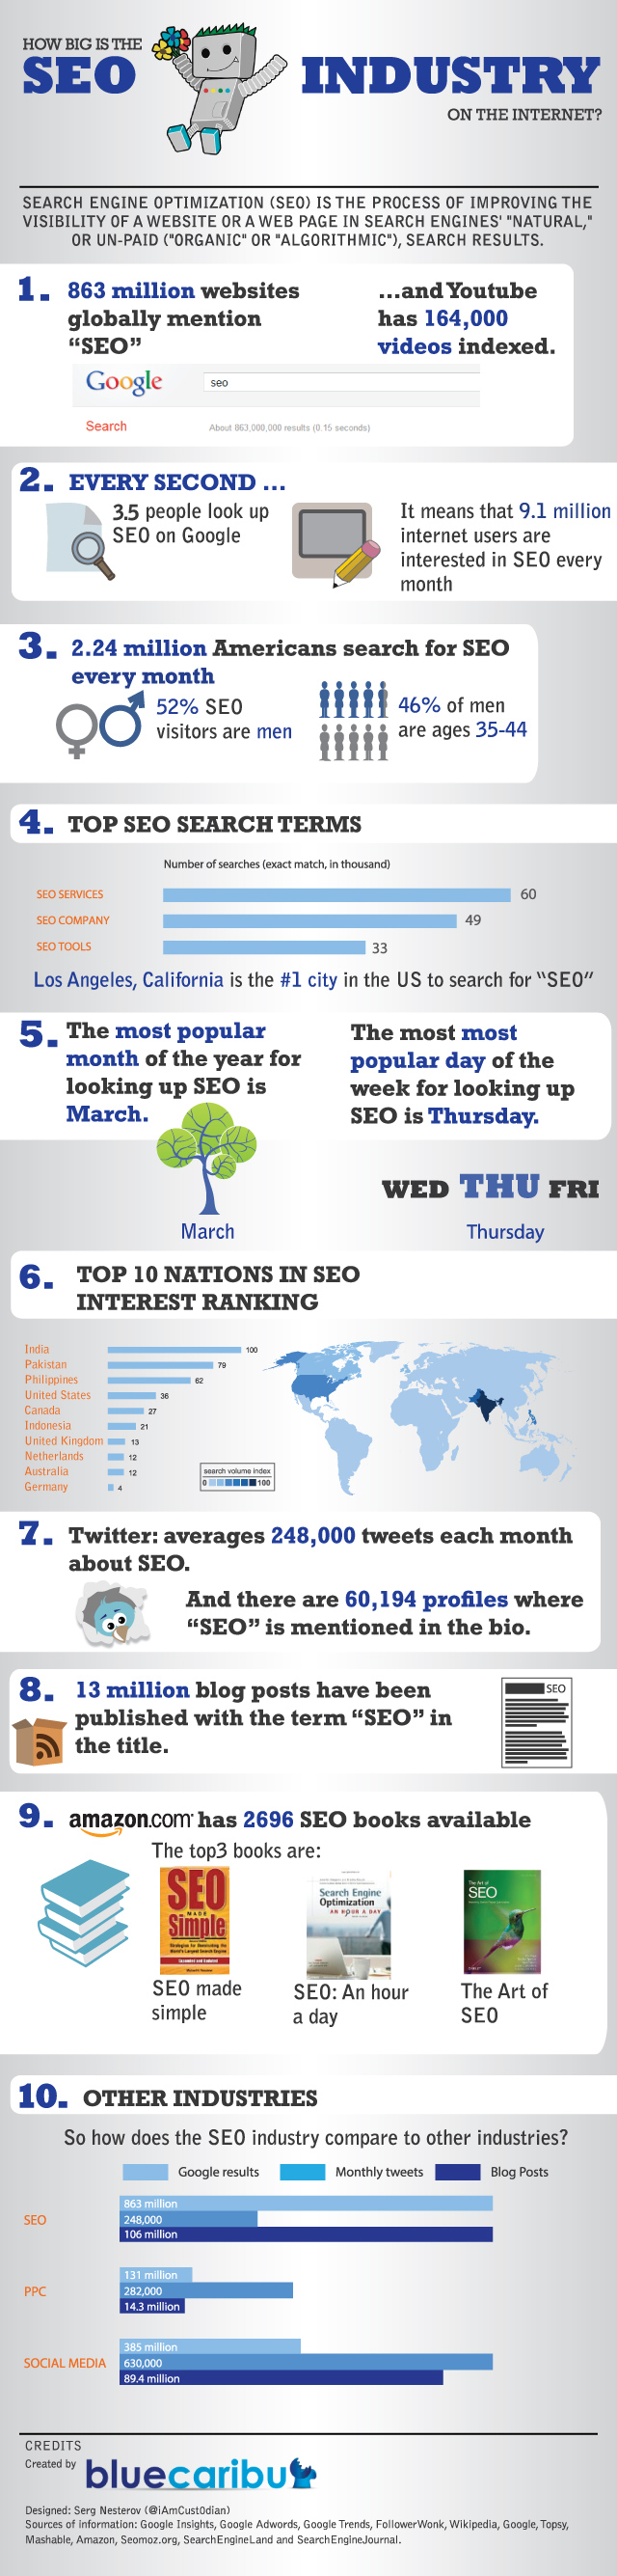 How Big is the SEO industry